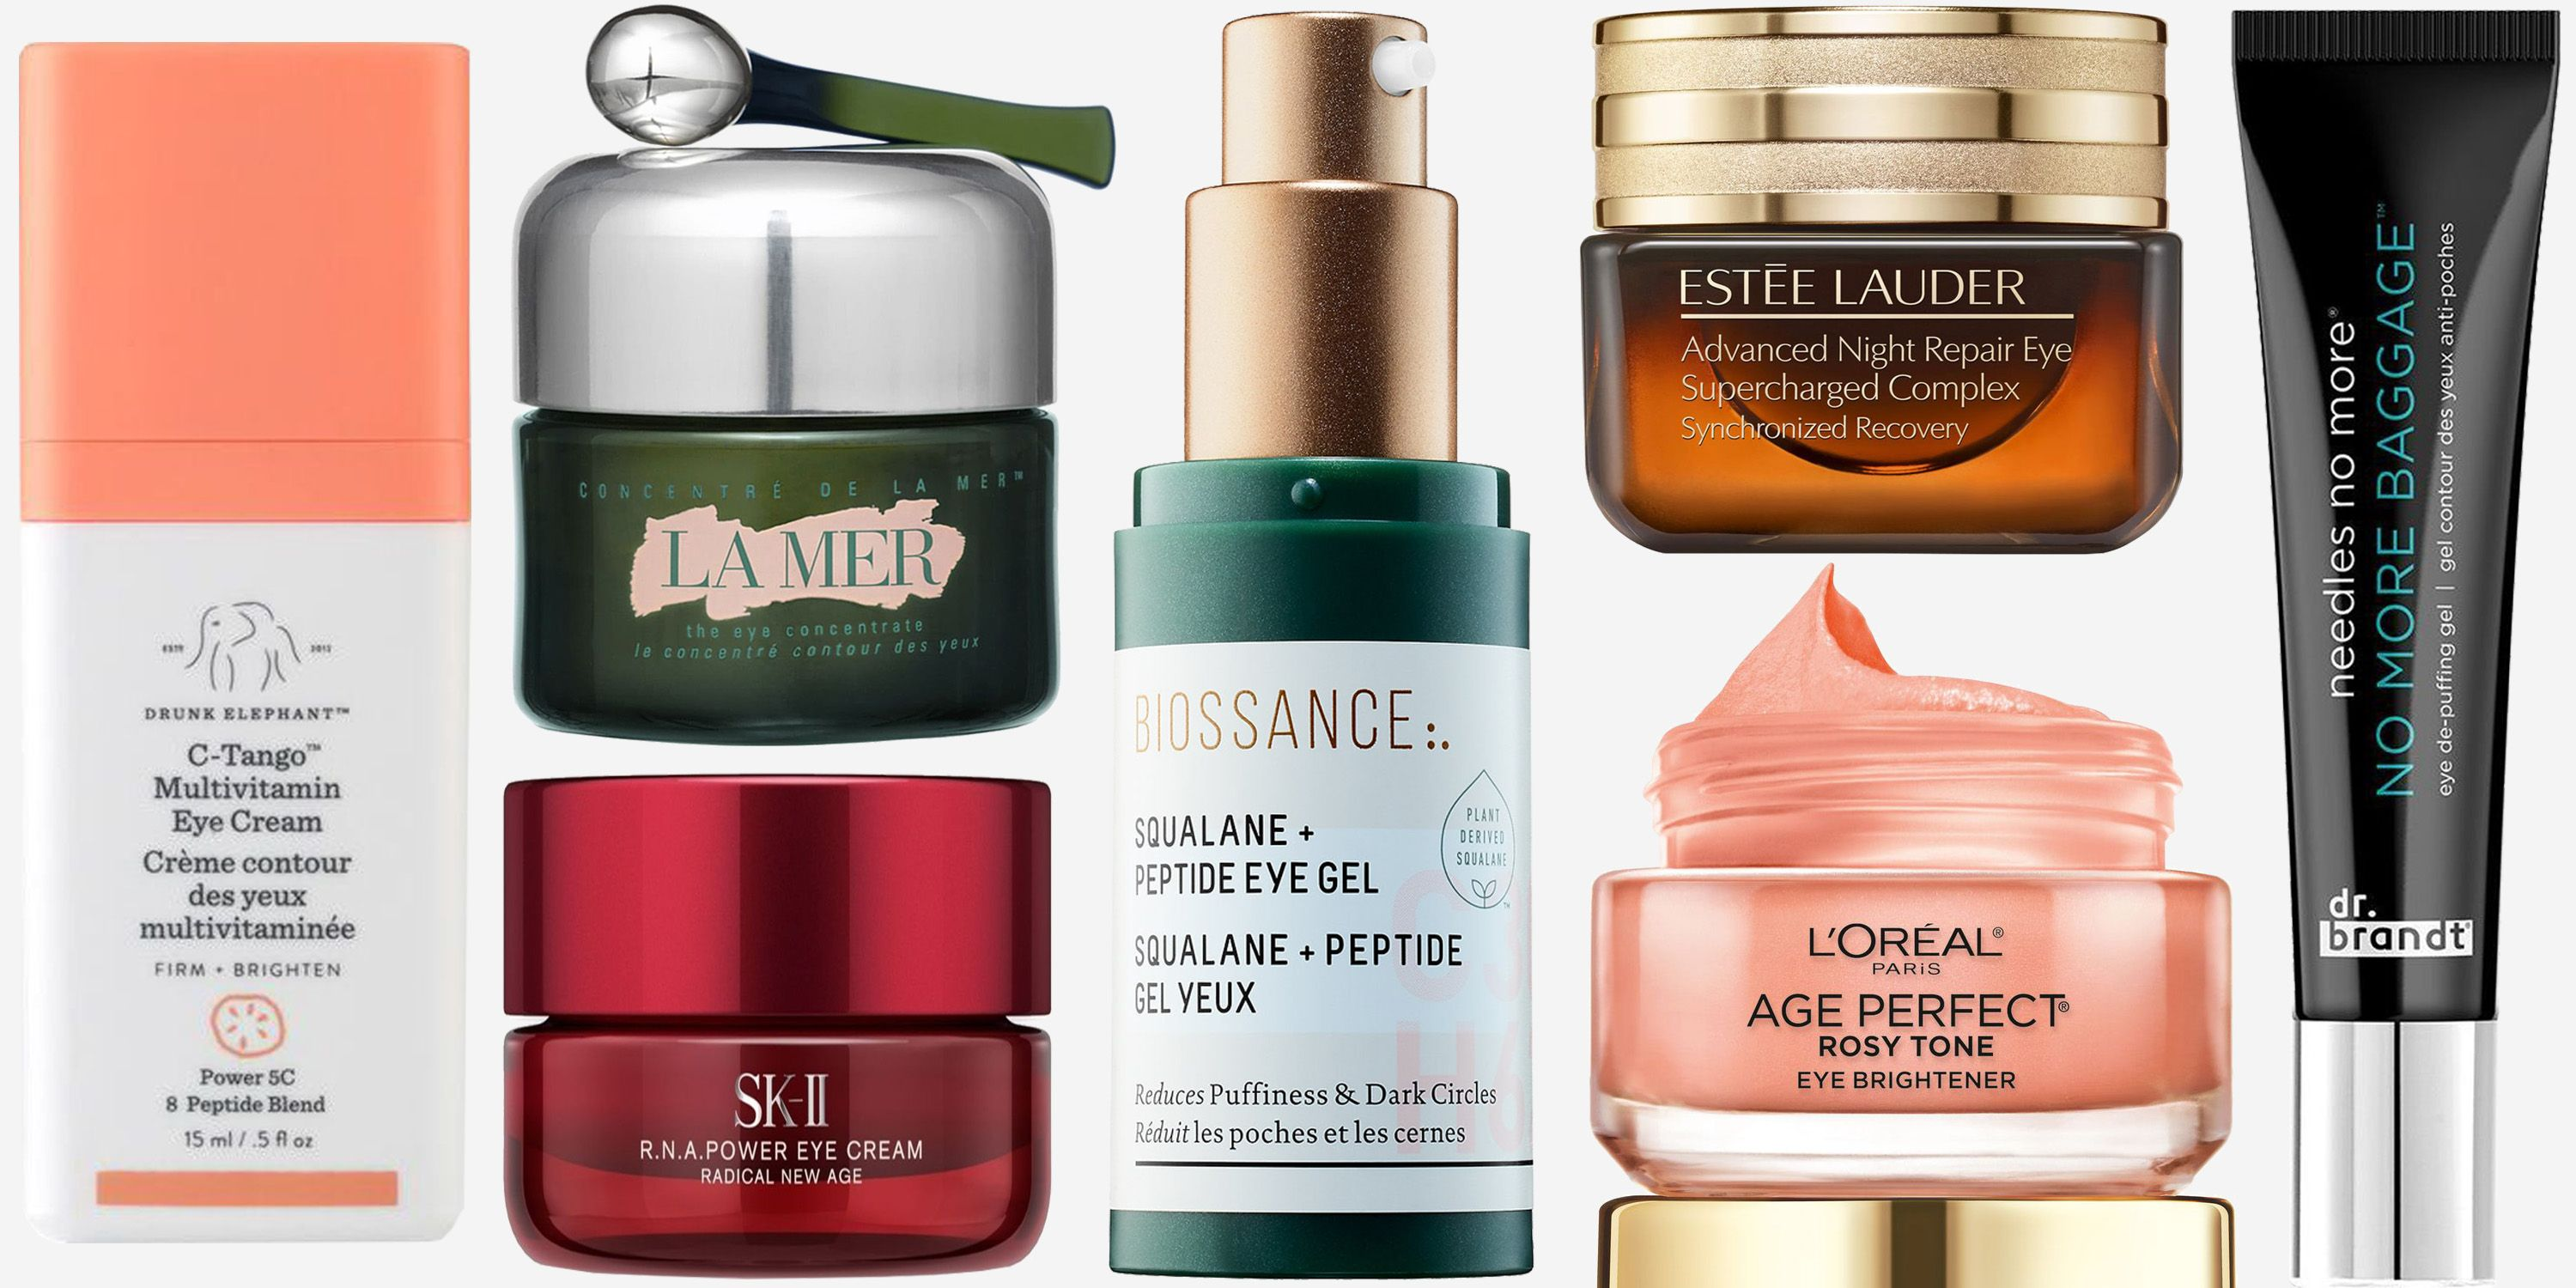 The Best Anti Aging Eye Creams Eye Creams For Wrinkles Dark Circles And Puffiness